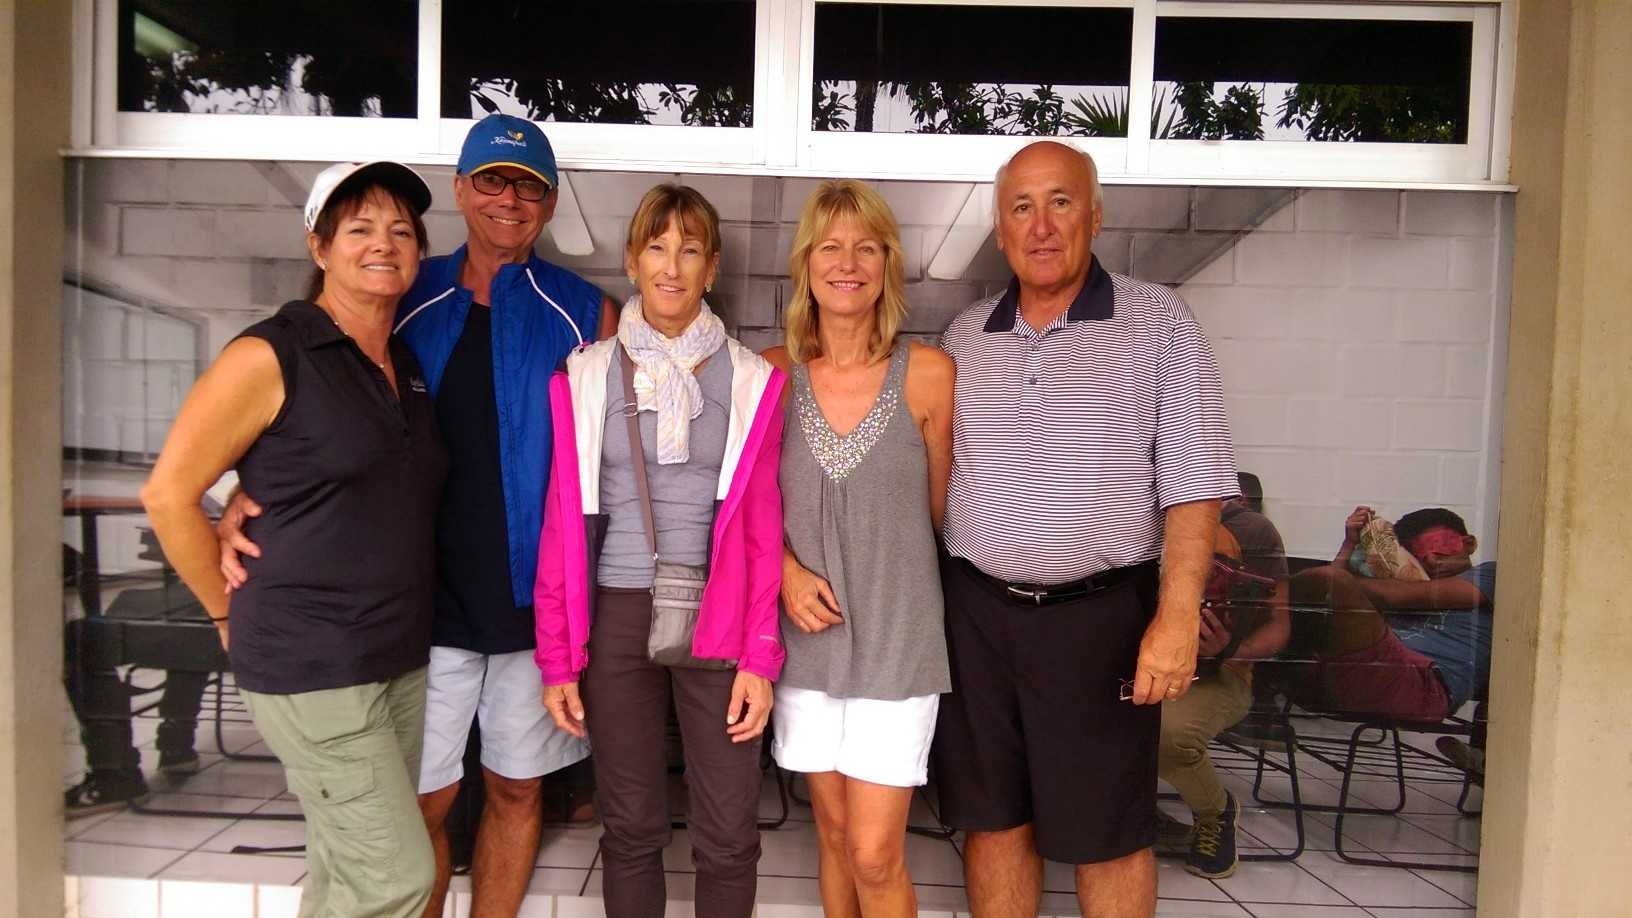 Diane Kimball, Steve Kimball, Linda Smith, Jo Ann Baca and Mark Baca are among the Northern California residents currently in Puerto Vallarta, Mexico.